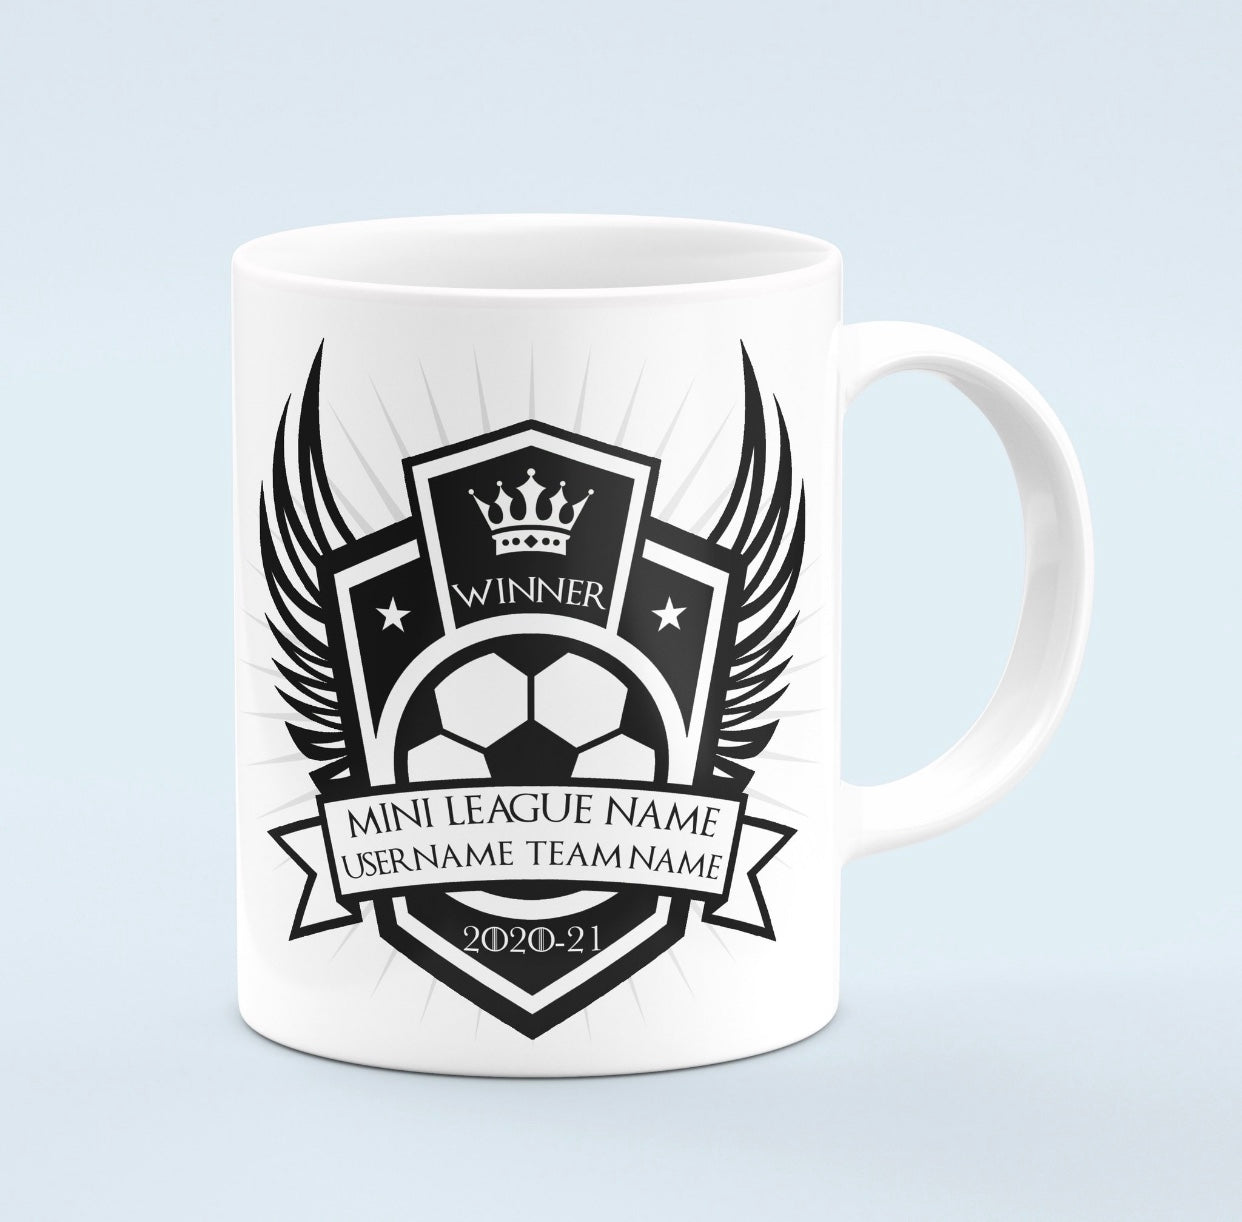 Custom winners mug for FPL mini leagues